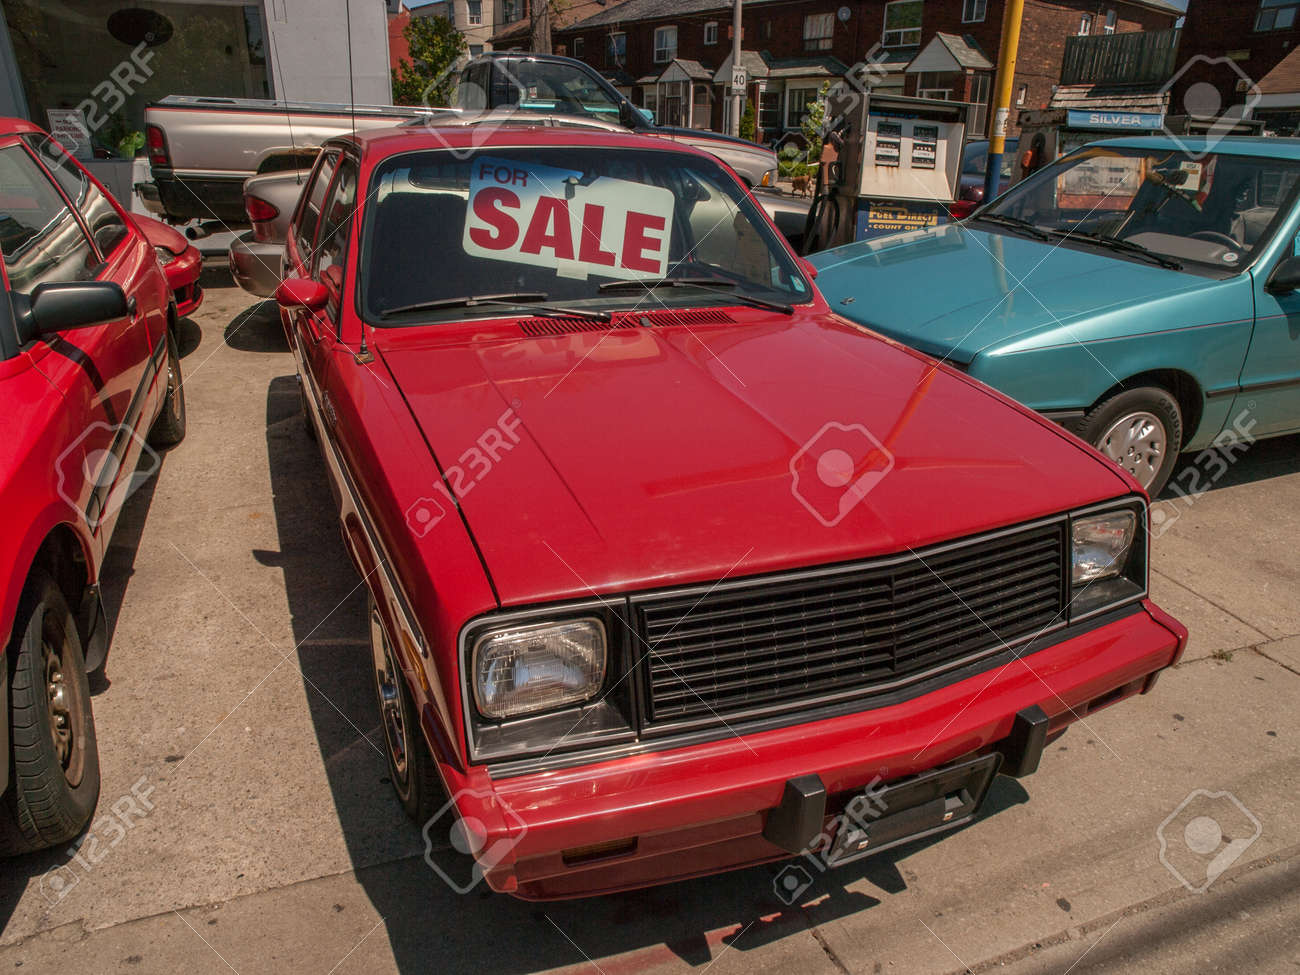 Old Red Hatchback Car For Sale In A Used Car Lot In Toronto Ontario ...